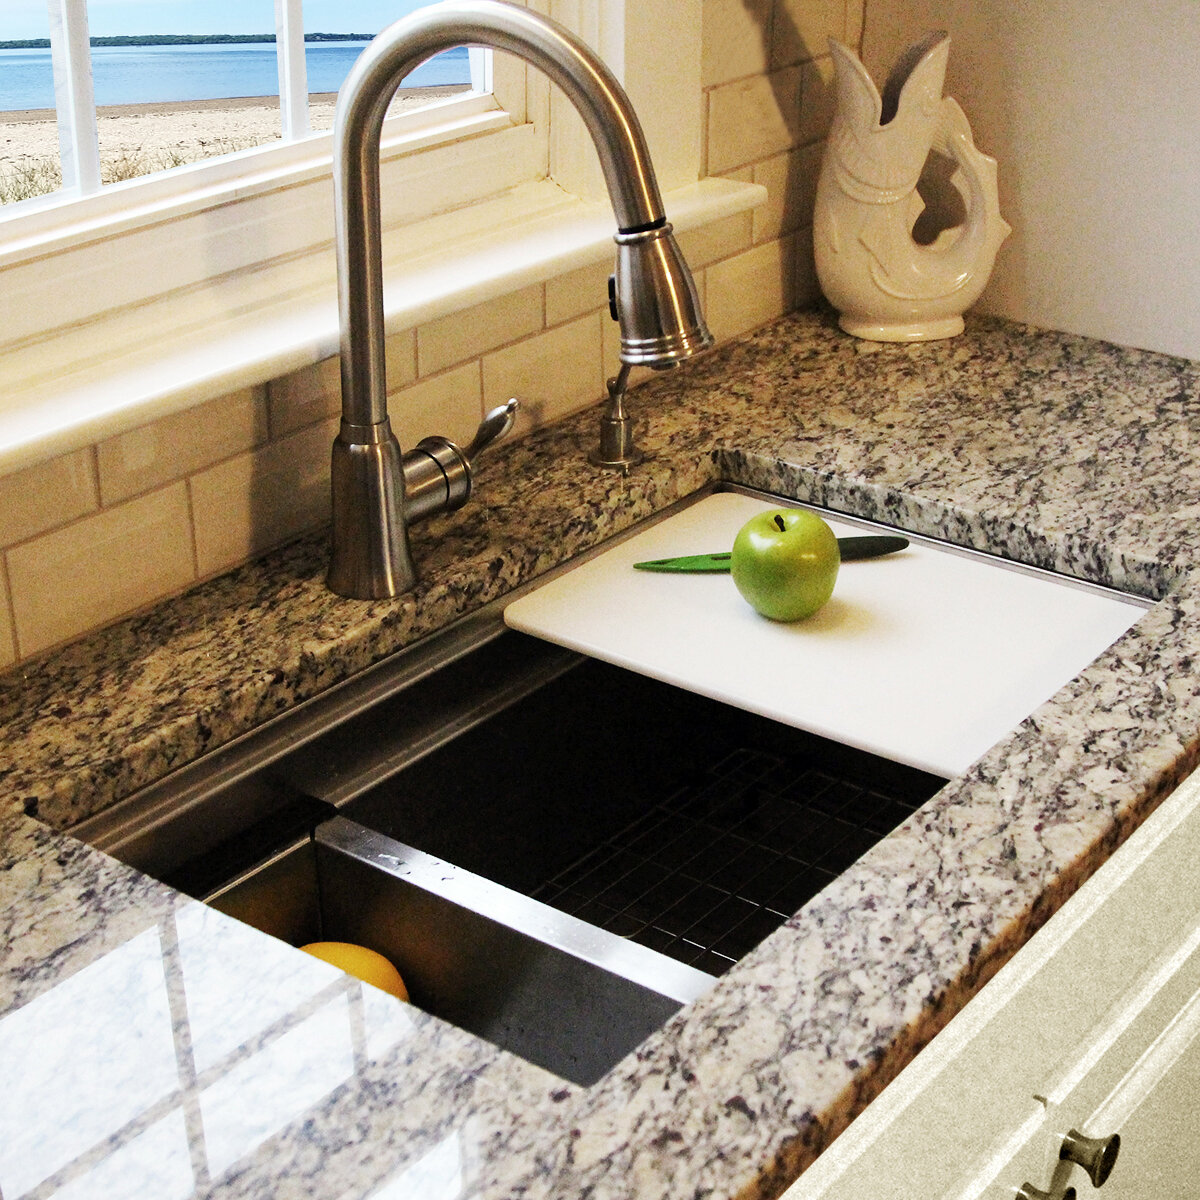 equal sink read undermount you winpro granite buy new quartz kitchen bowl double of types sinks this before black composite